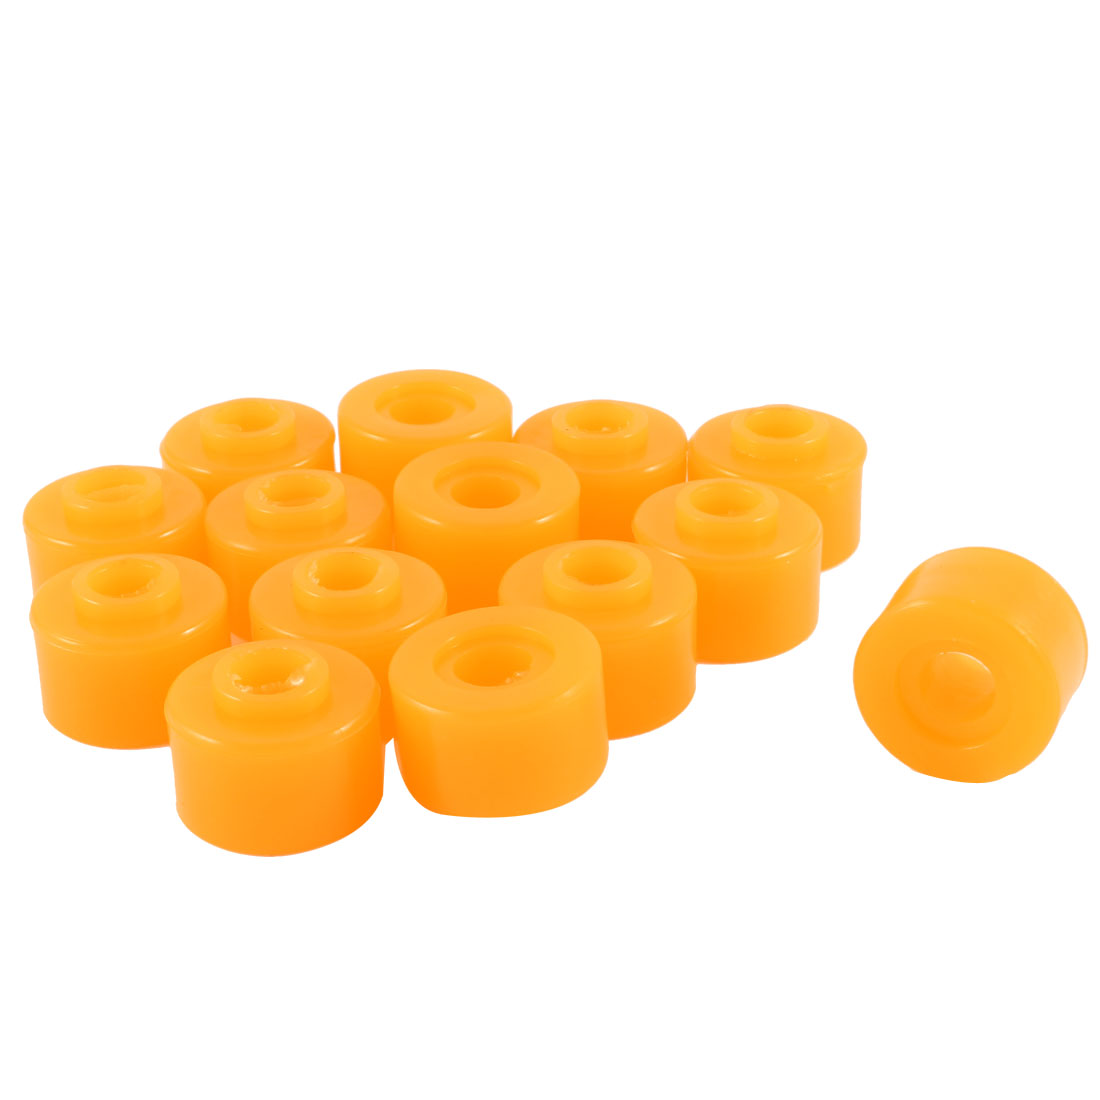 14 Pcs Rubber Shock Absorber Bushings Part 27mm x 20mm x 10mm Orange for Cars